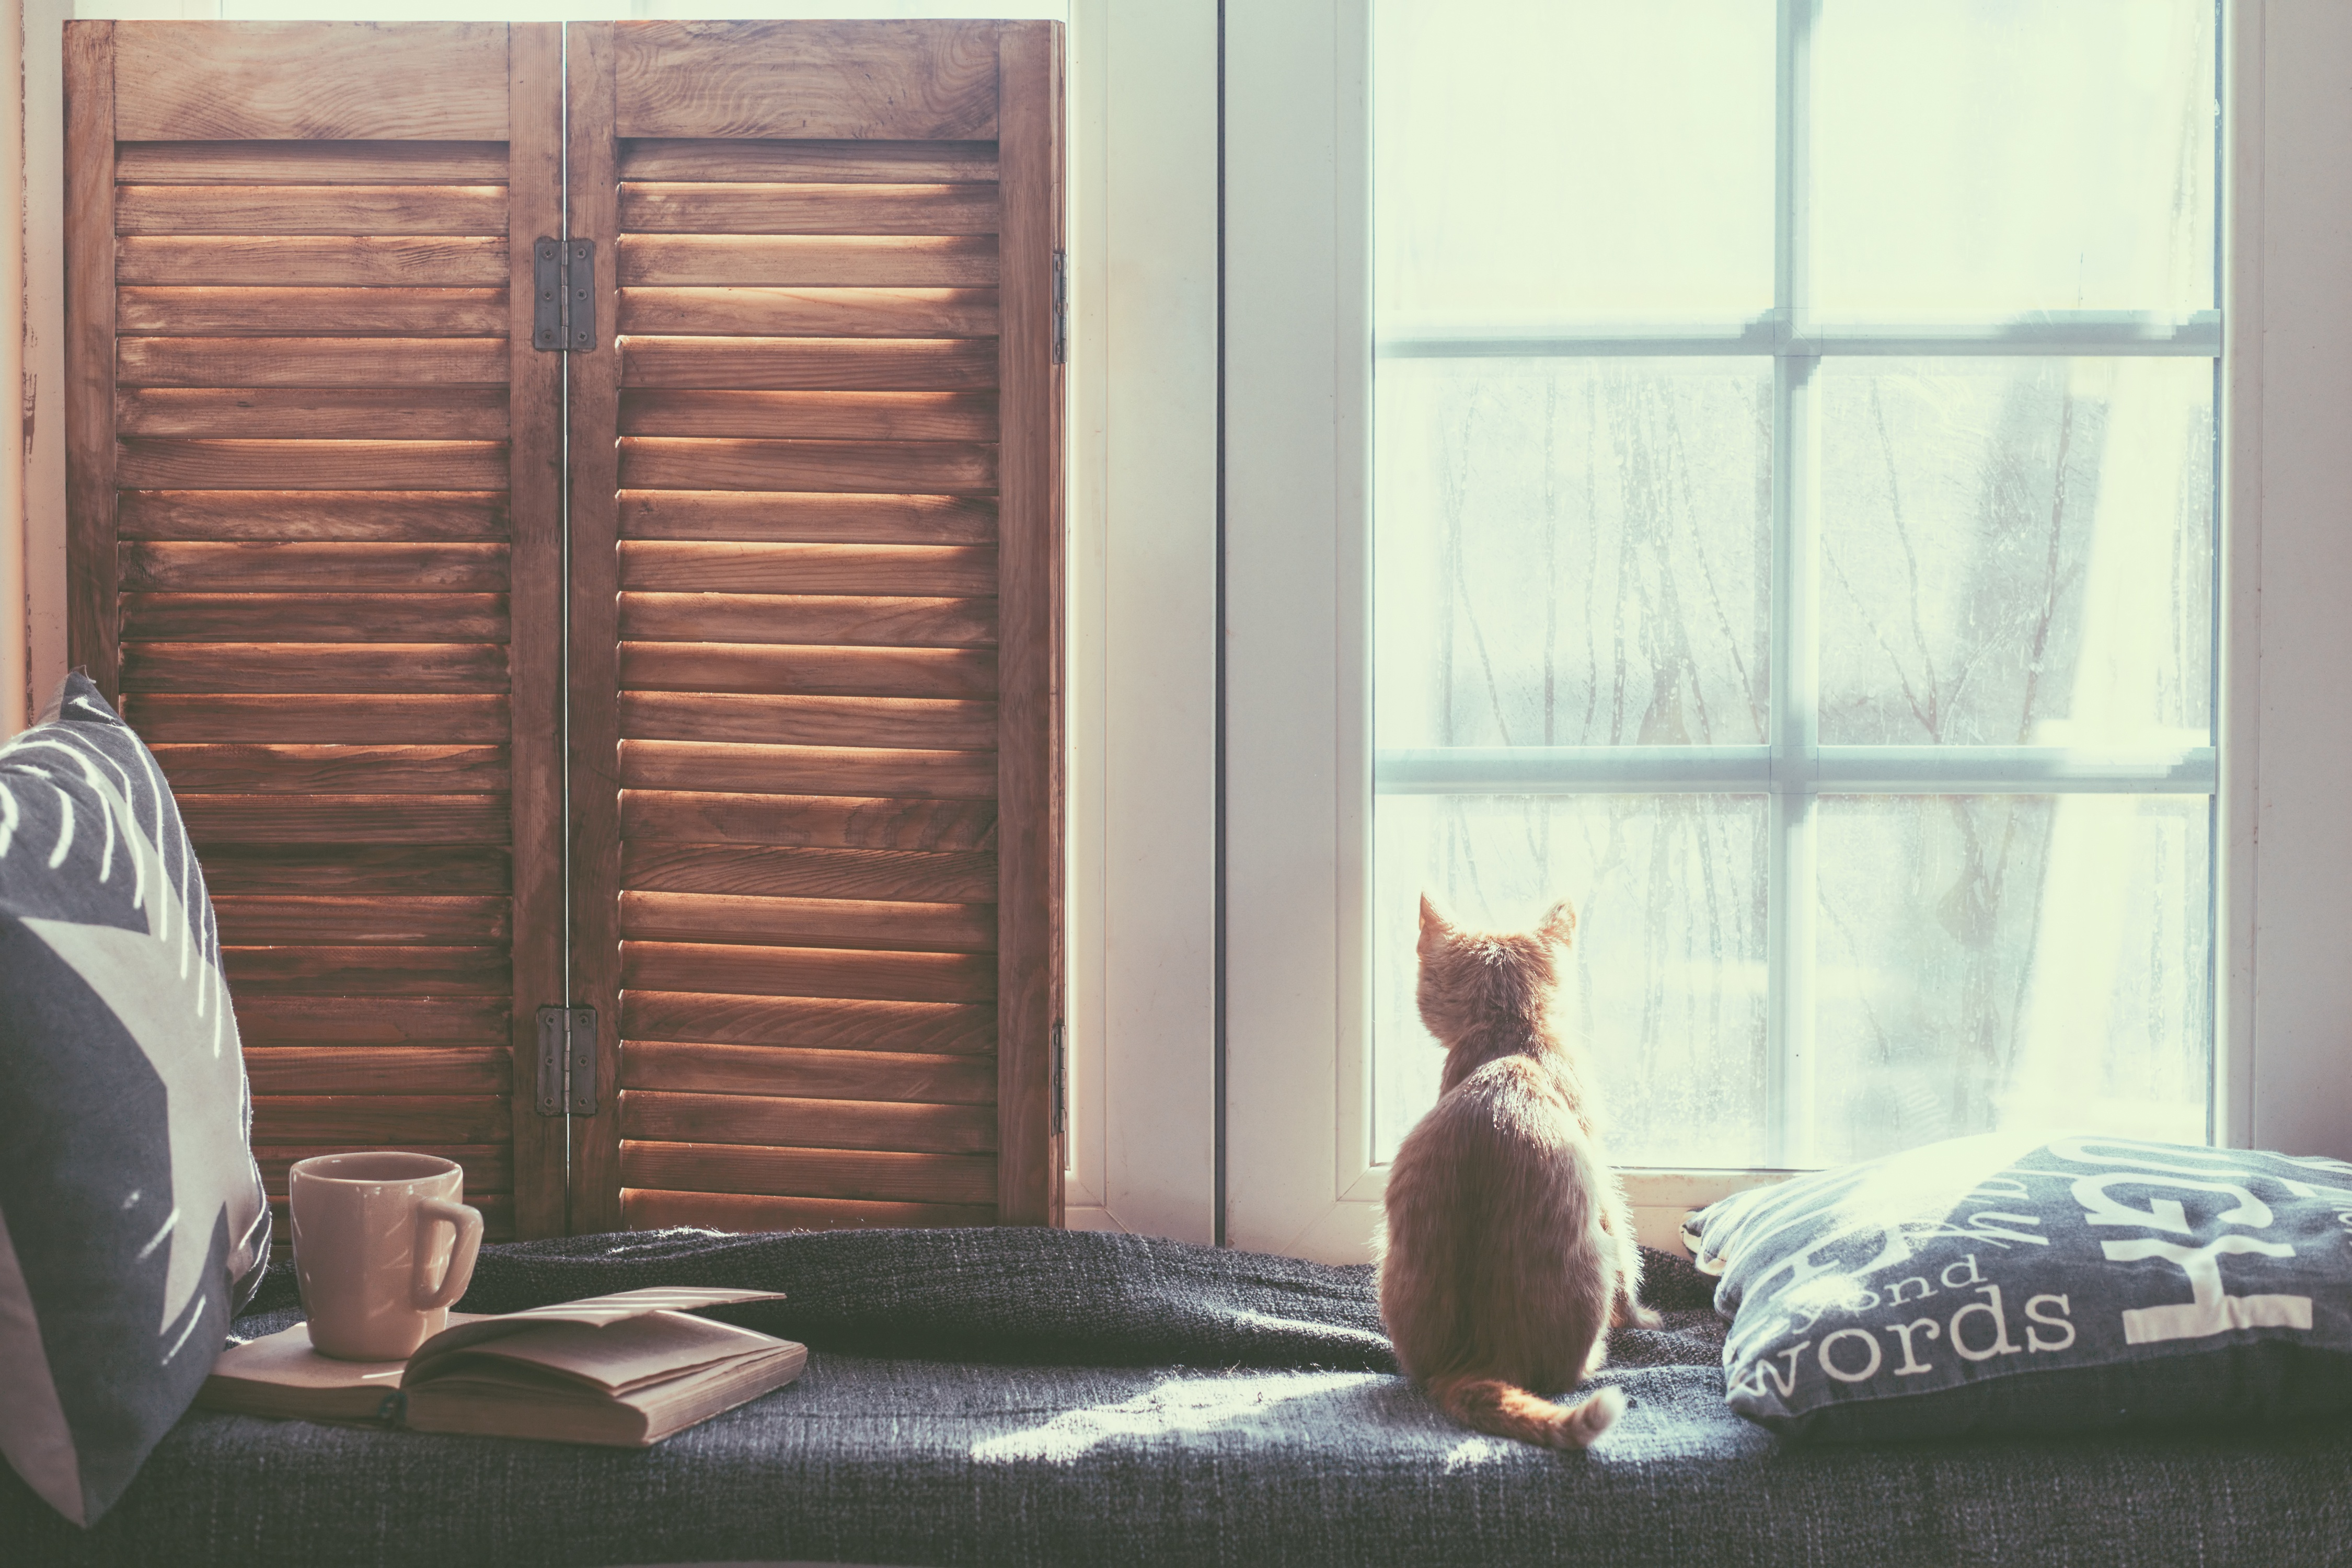 Small ginger cat looks out the window